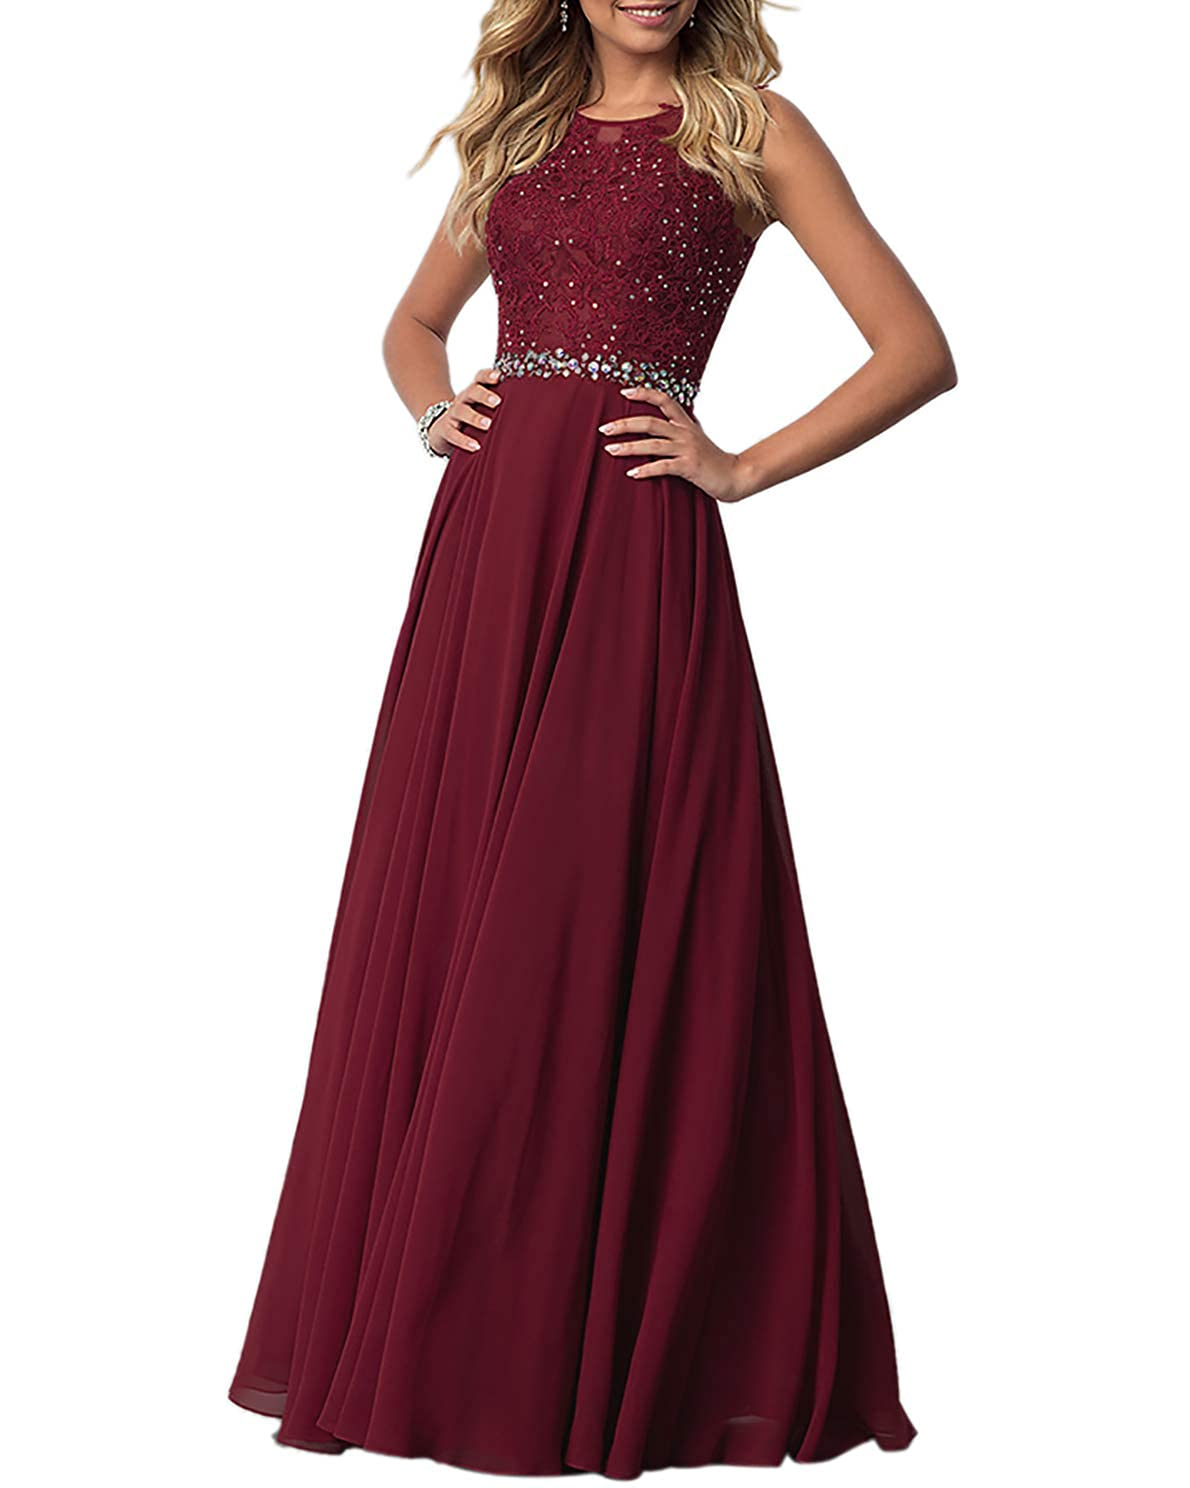 b0b80d305a Chiffon Evening Gown With Lace Appliques - Gomes Weine AG